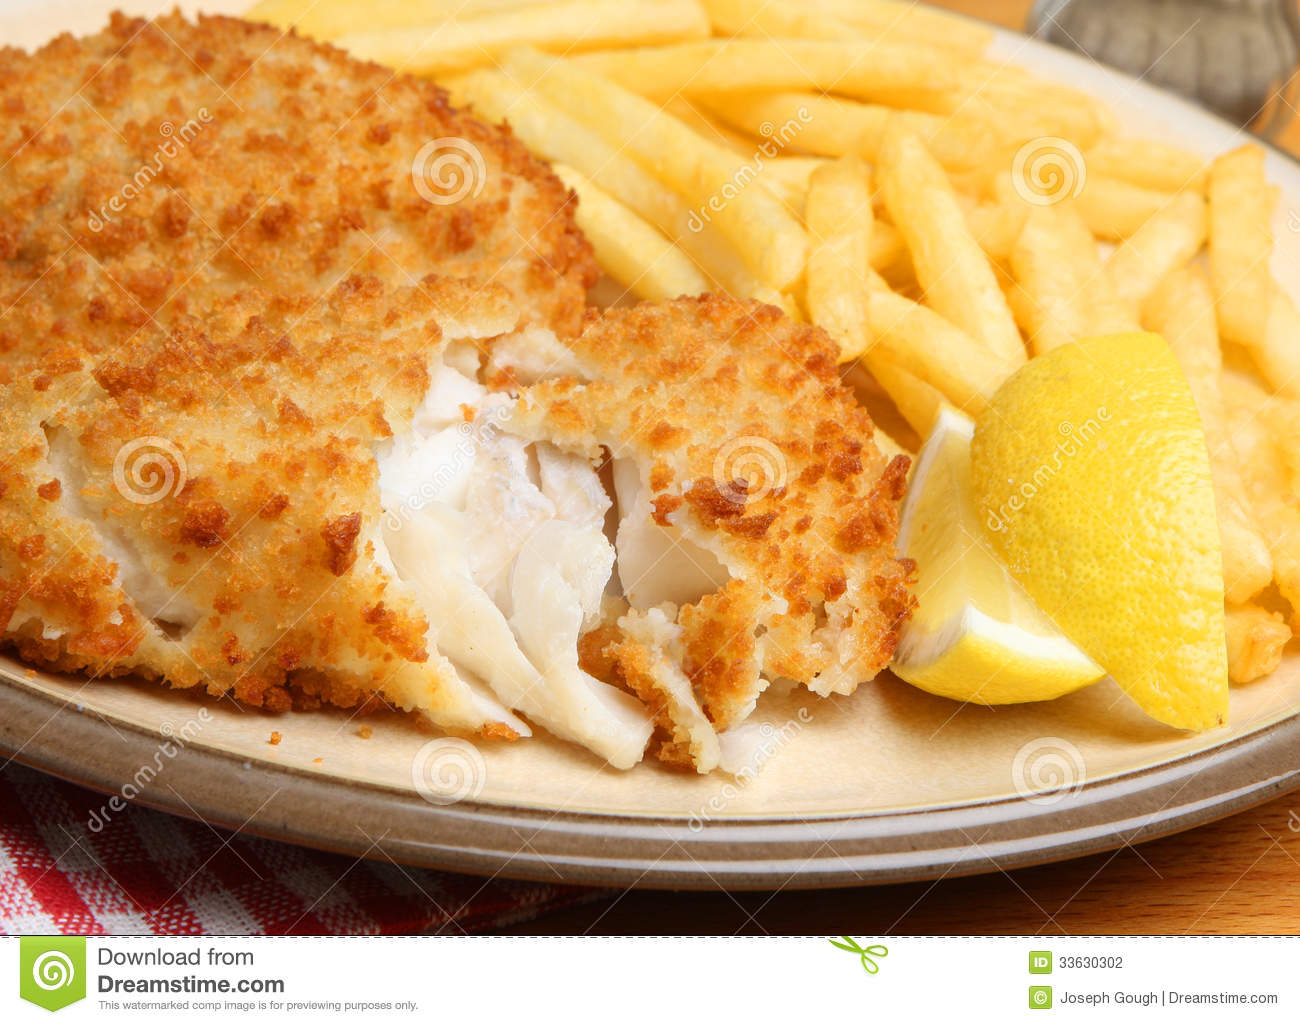 Breaded fish fillet fries stock photography image for How to bread fish